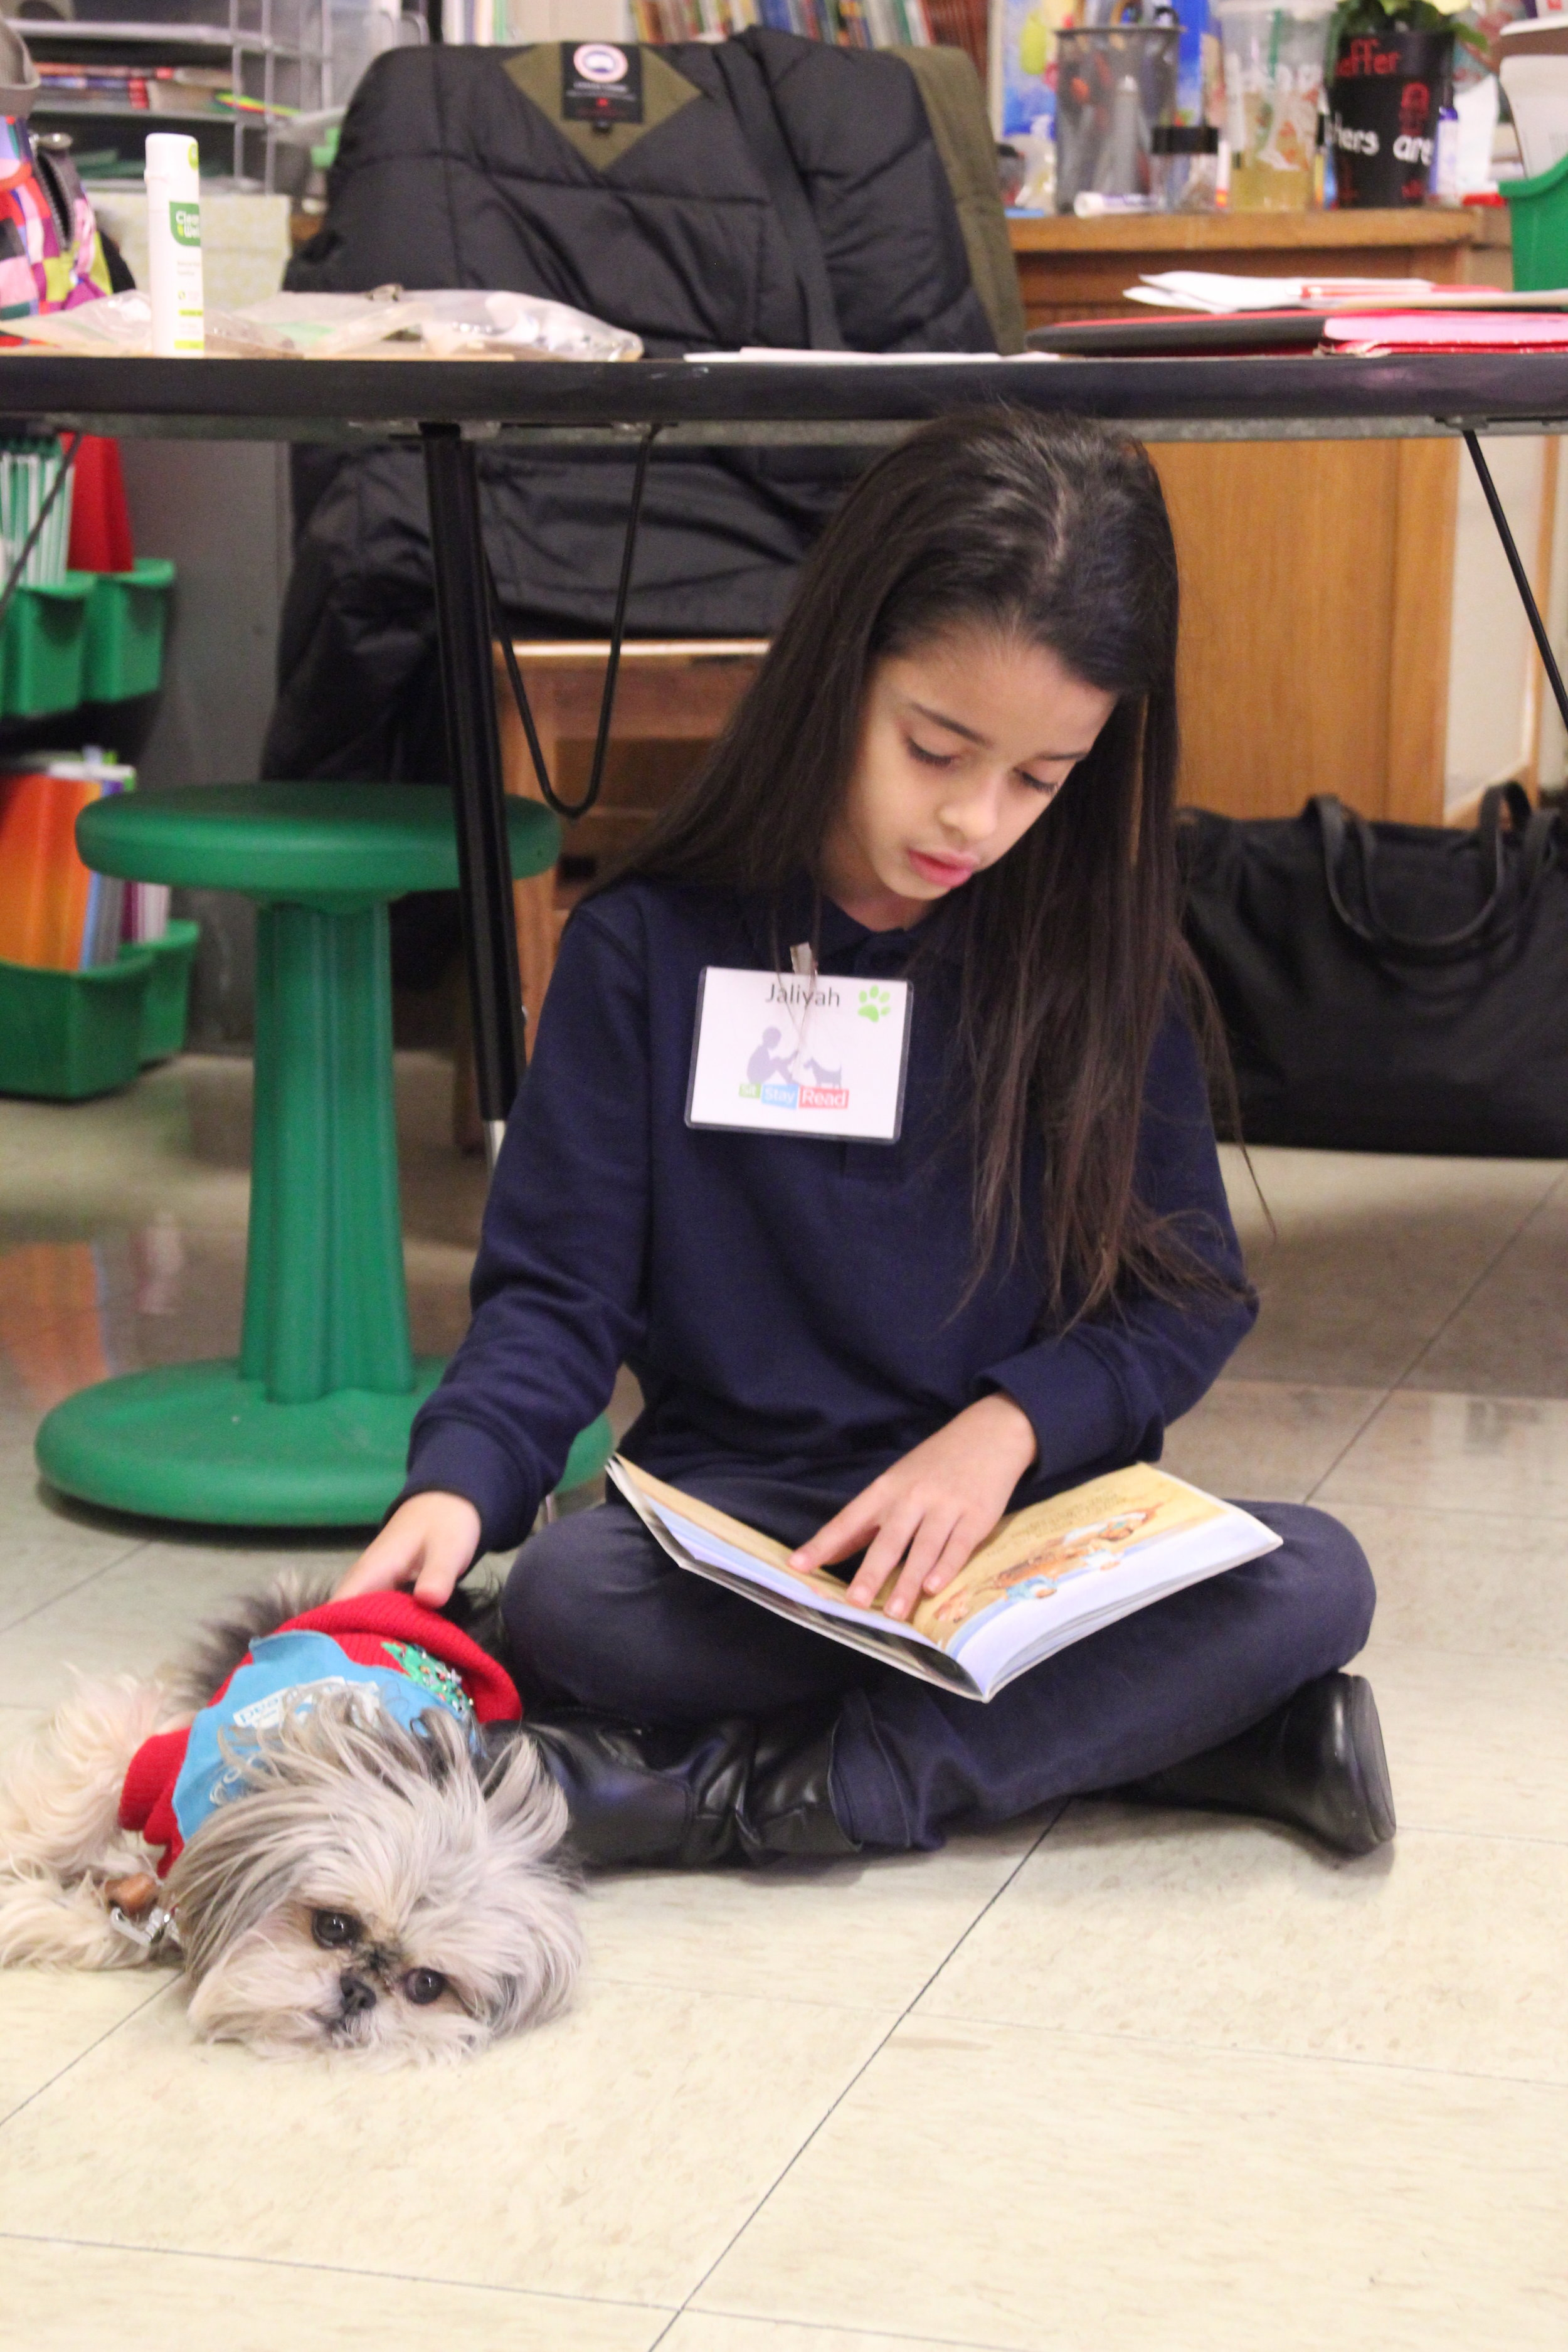 Second-grader Jayilah reads out loud to Certified Reading Assistance Dog Bambi during a SitStayRead Tail Blazers program.